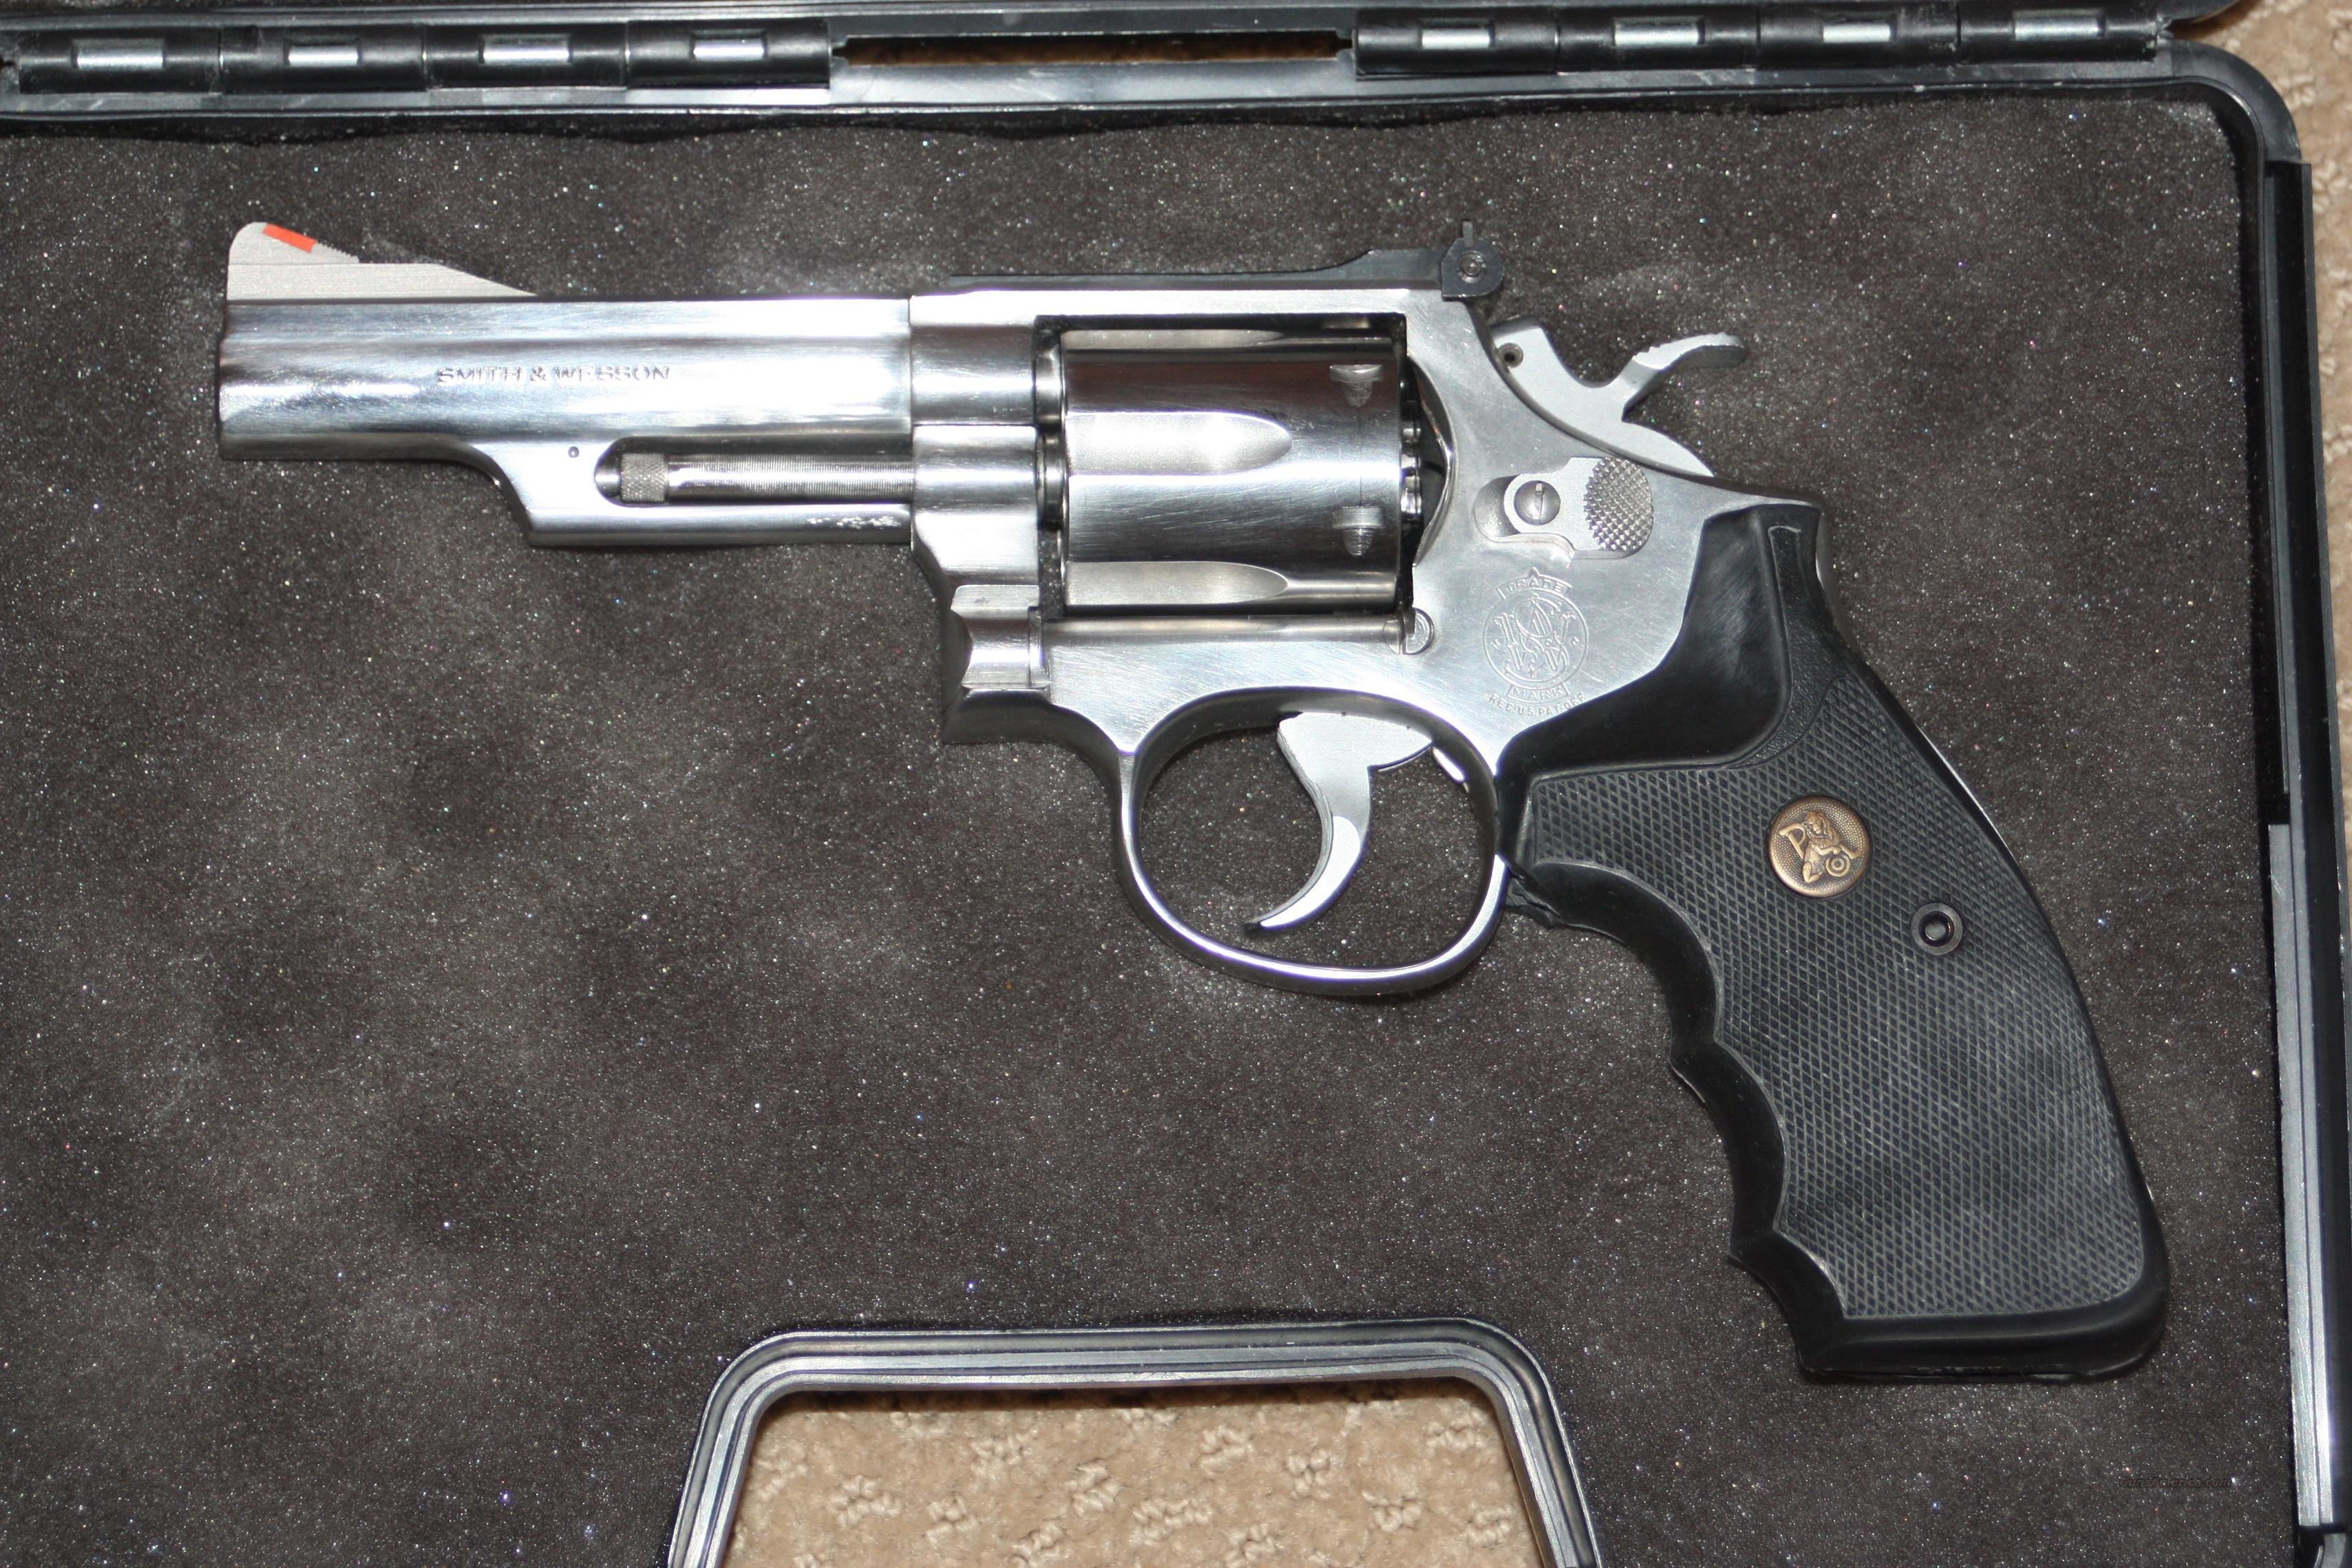 S Amp W Model 66 2 Stainless 357 Magnum Revolver For Sale